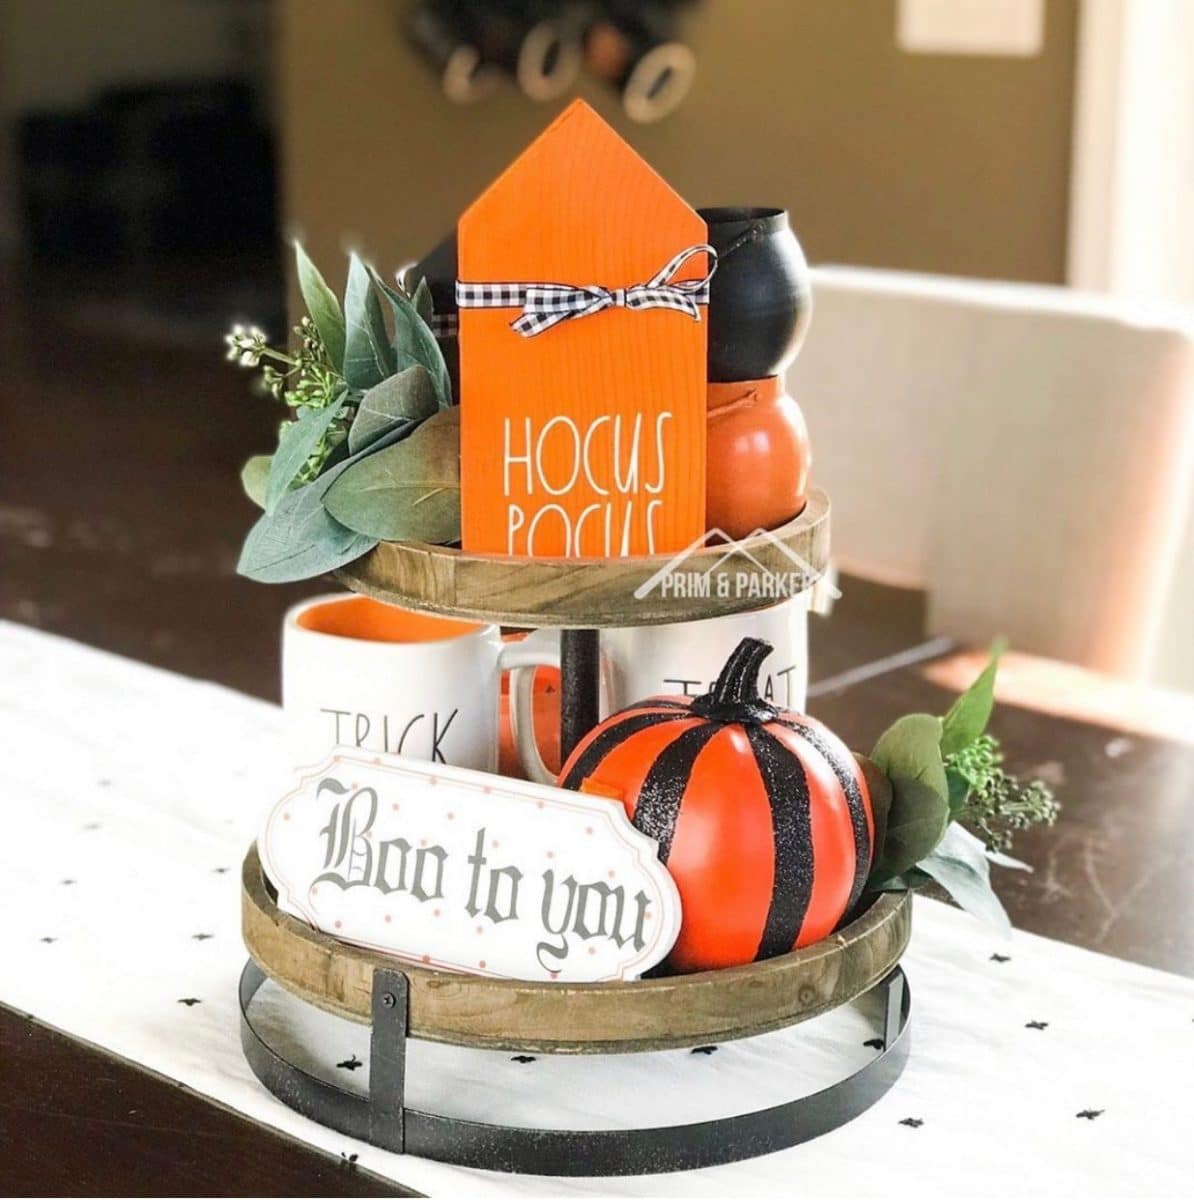 Halloween tiered tray ideas for home.  Orange Hocus Pocus house with black and white gingham ribbon bow, signs, Rae Dunn mug, pumpkin.